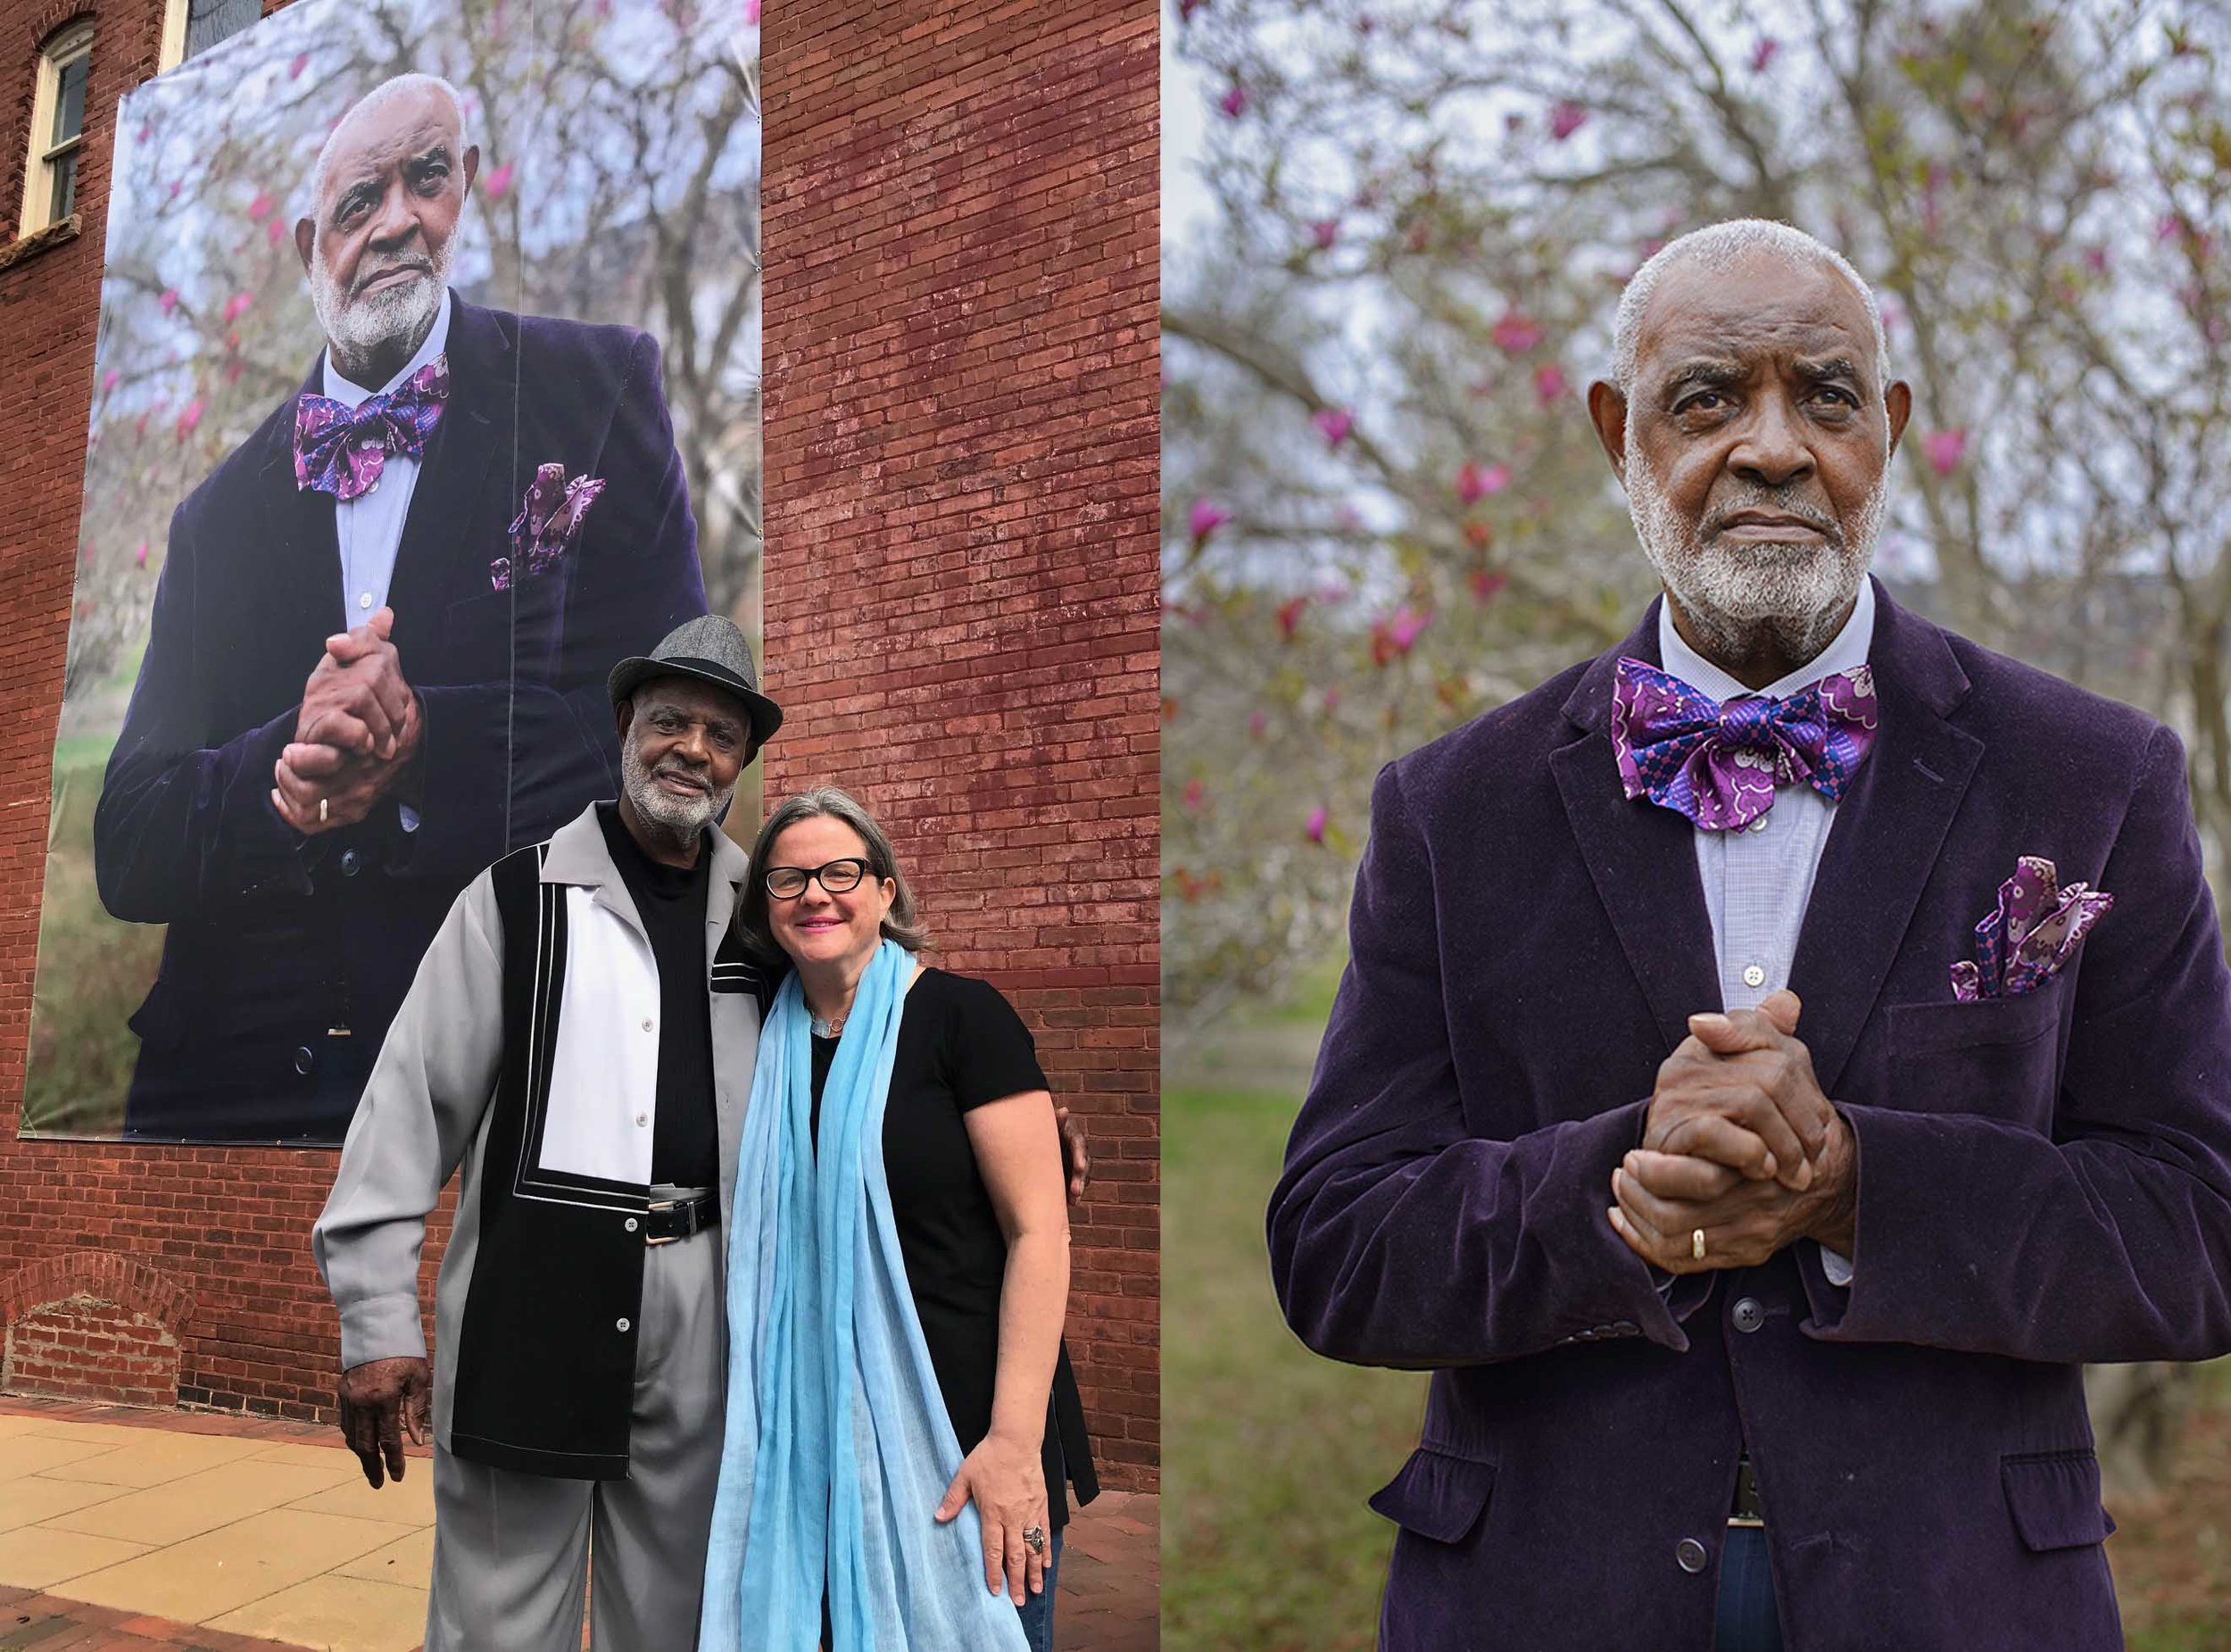 Pic 1: Mary Beth meehan and Rufus Smith, jr. in newnan - Pic 2: Meehan's Portrait of Rufus Smith, jr.